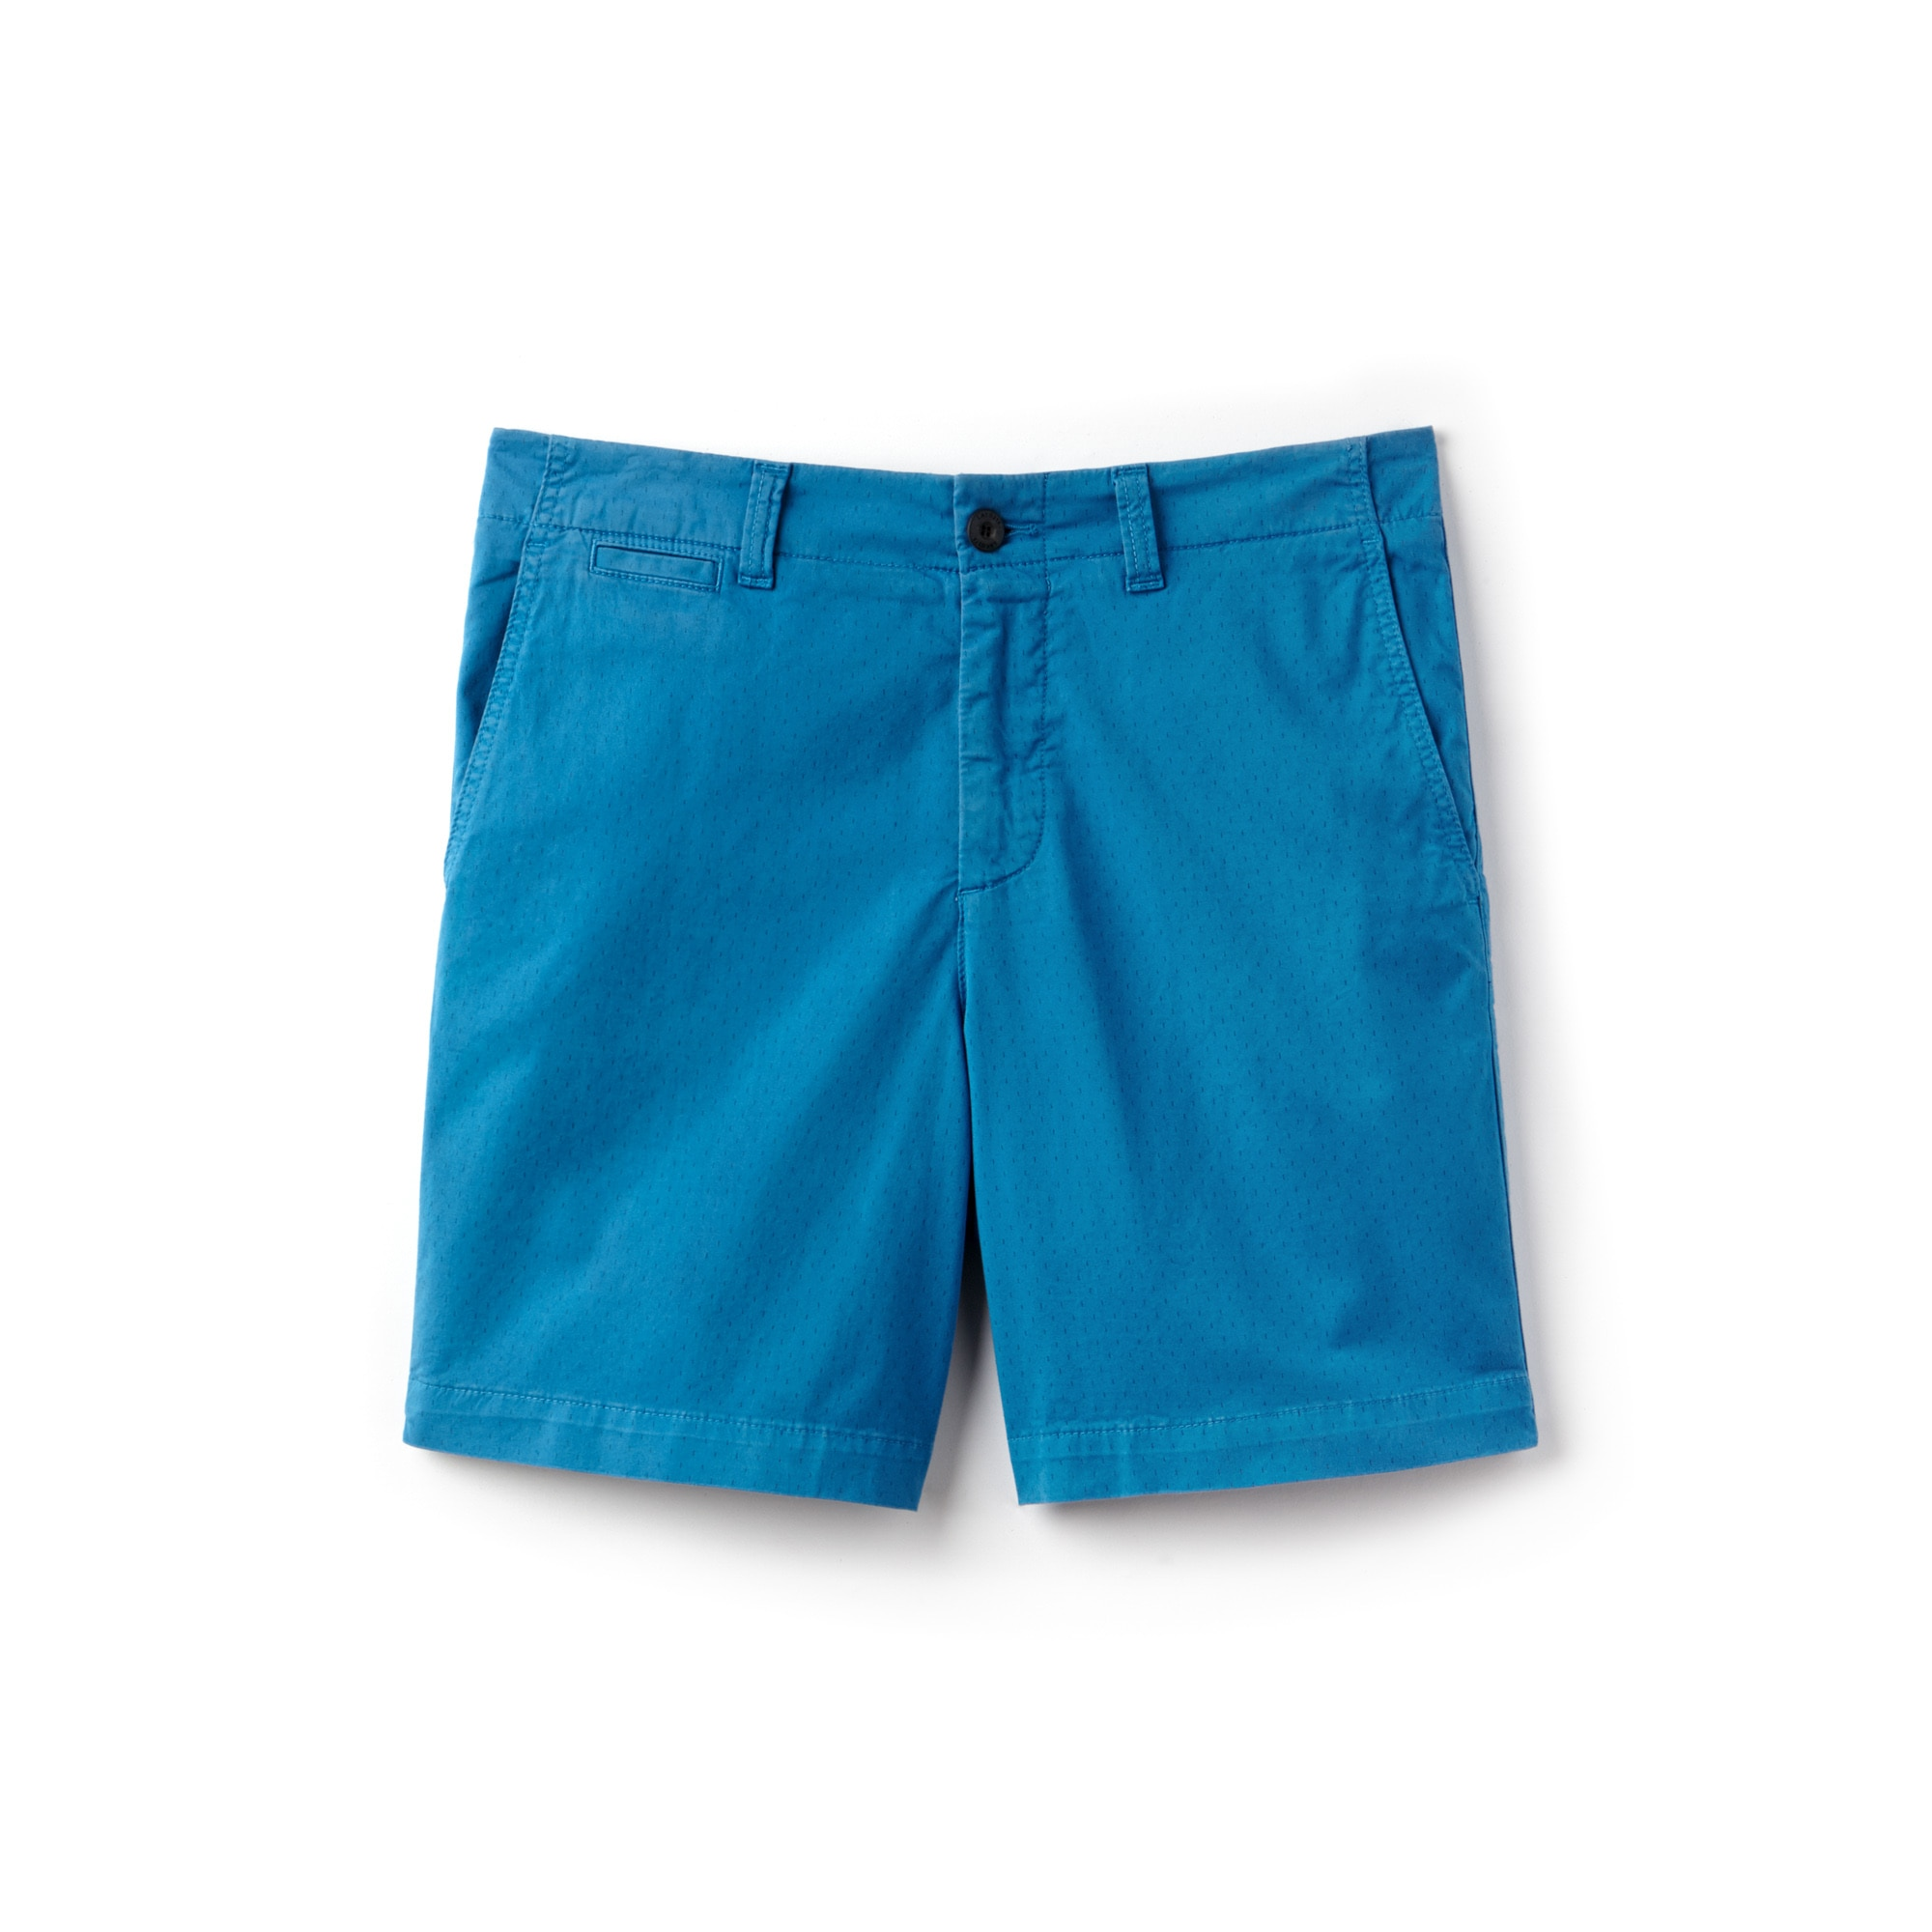 Men's Regular Fit Mini Print Stretch Cotton Twill Bermuda Shorts